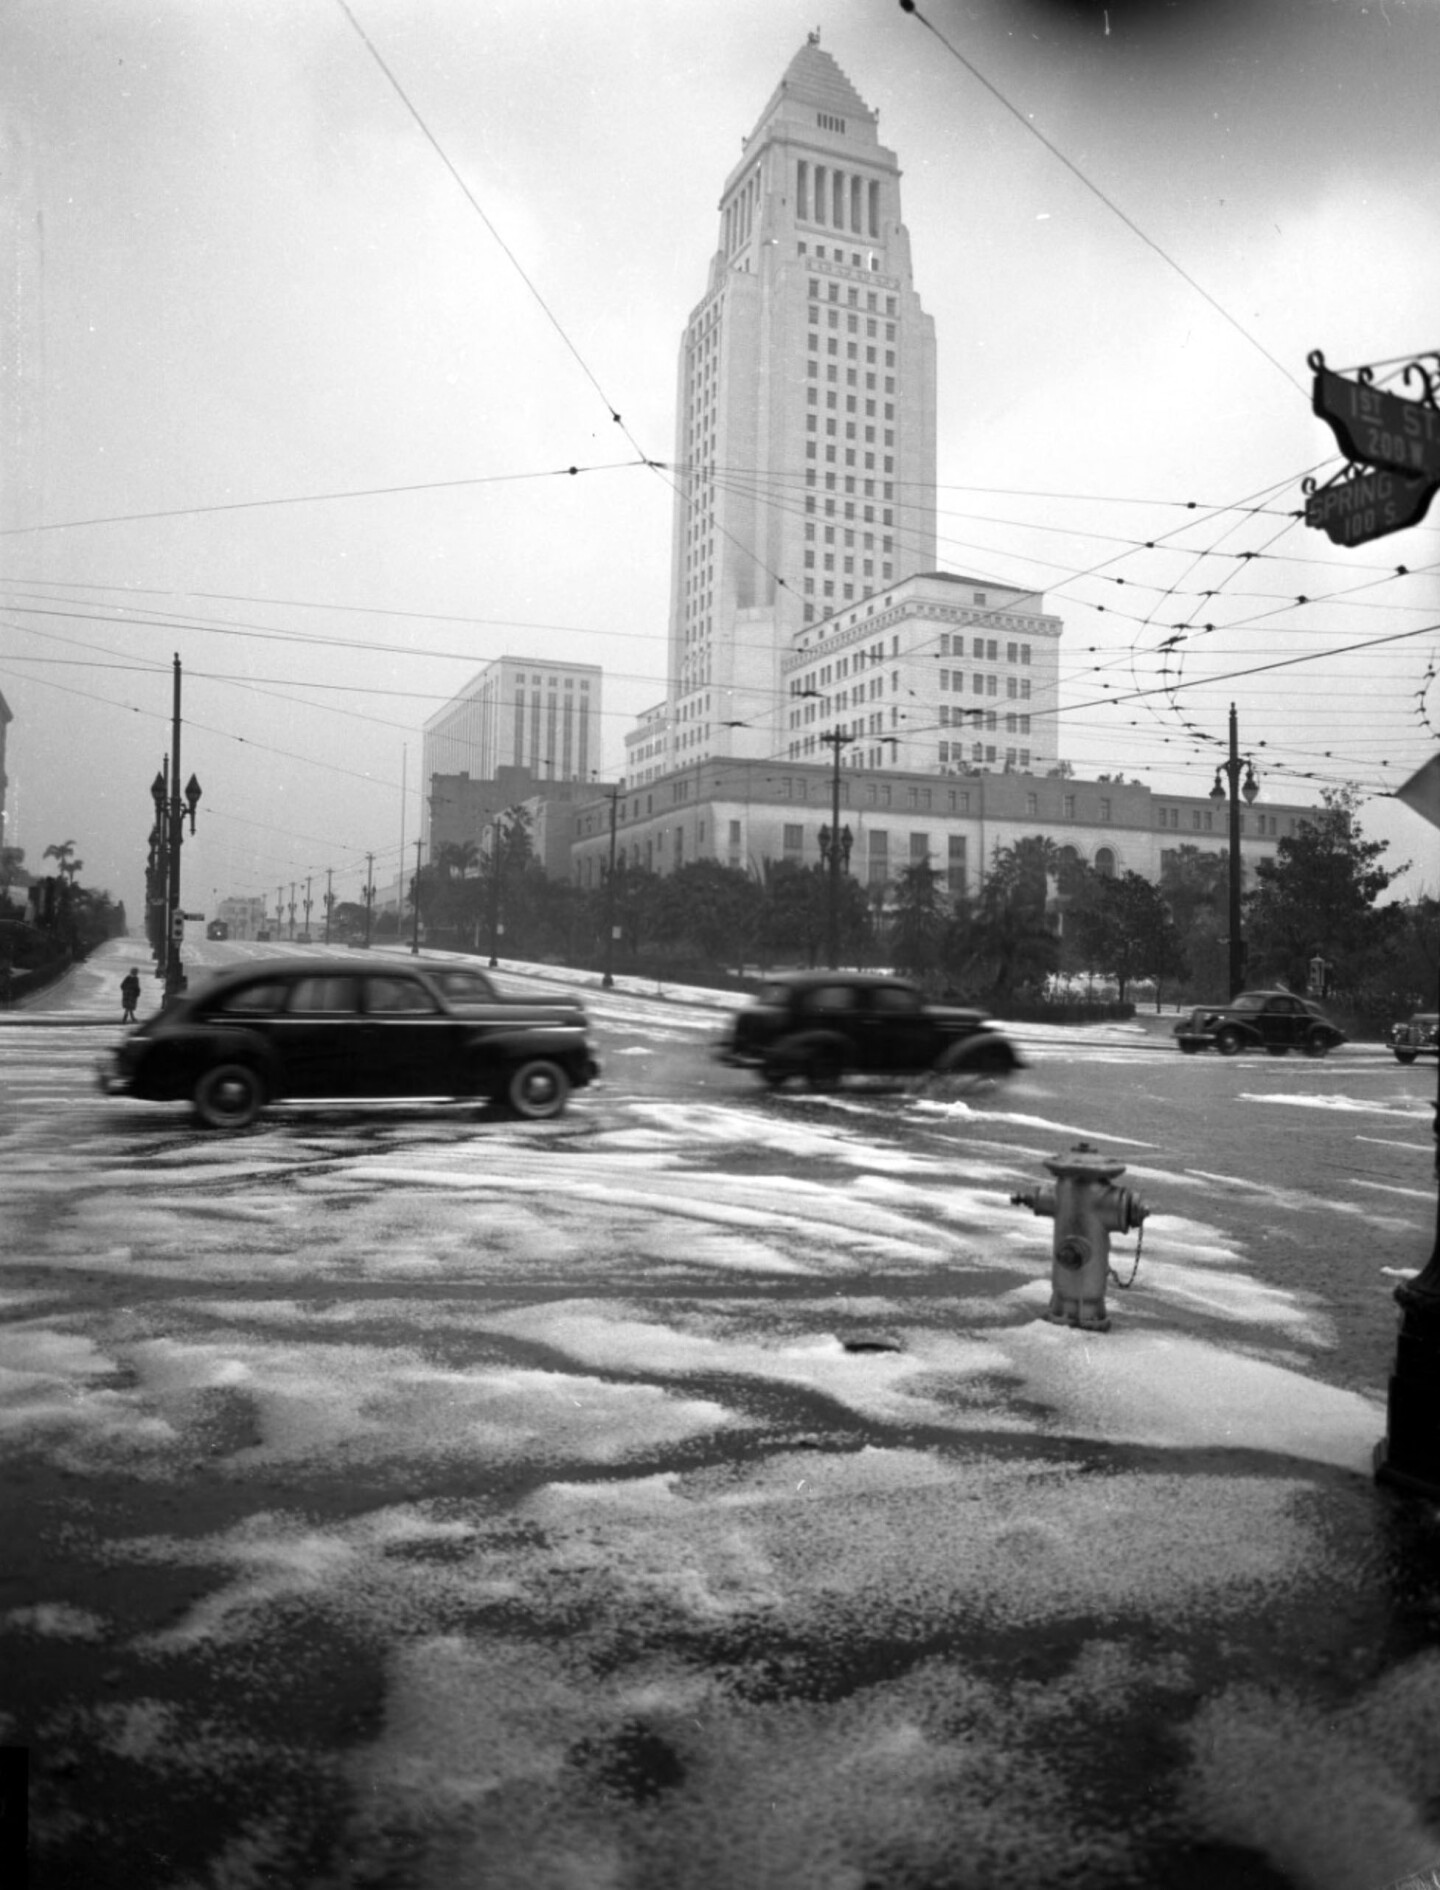 Los Angeles City Hall towers over slushy streets on Feb. 21, 1944